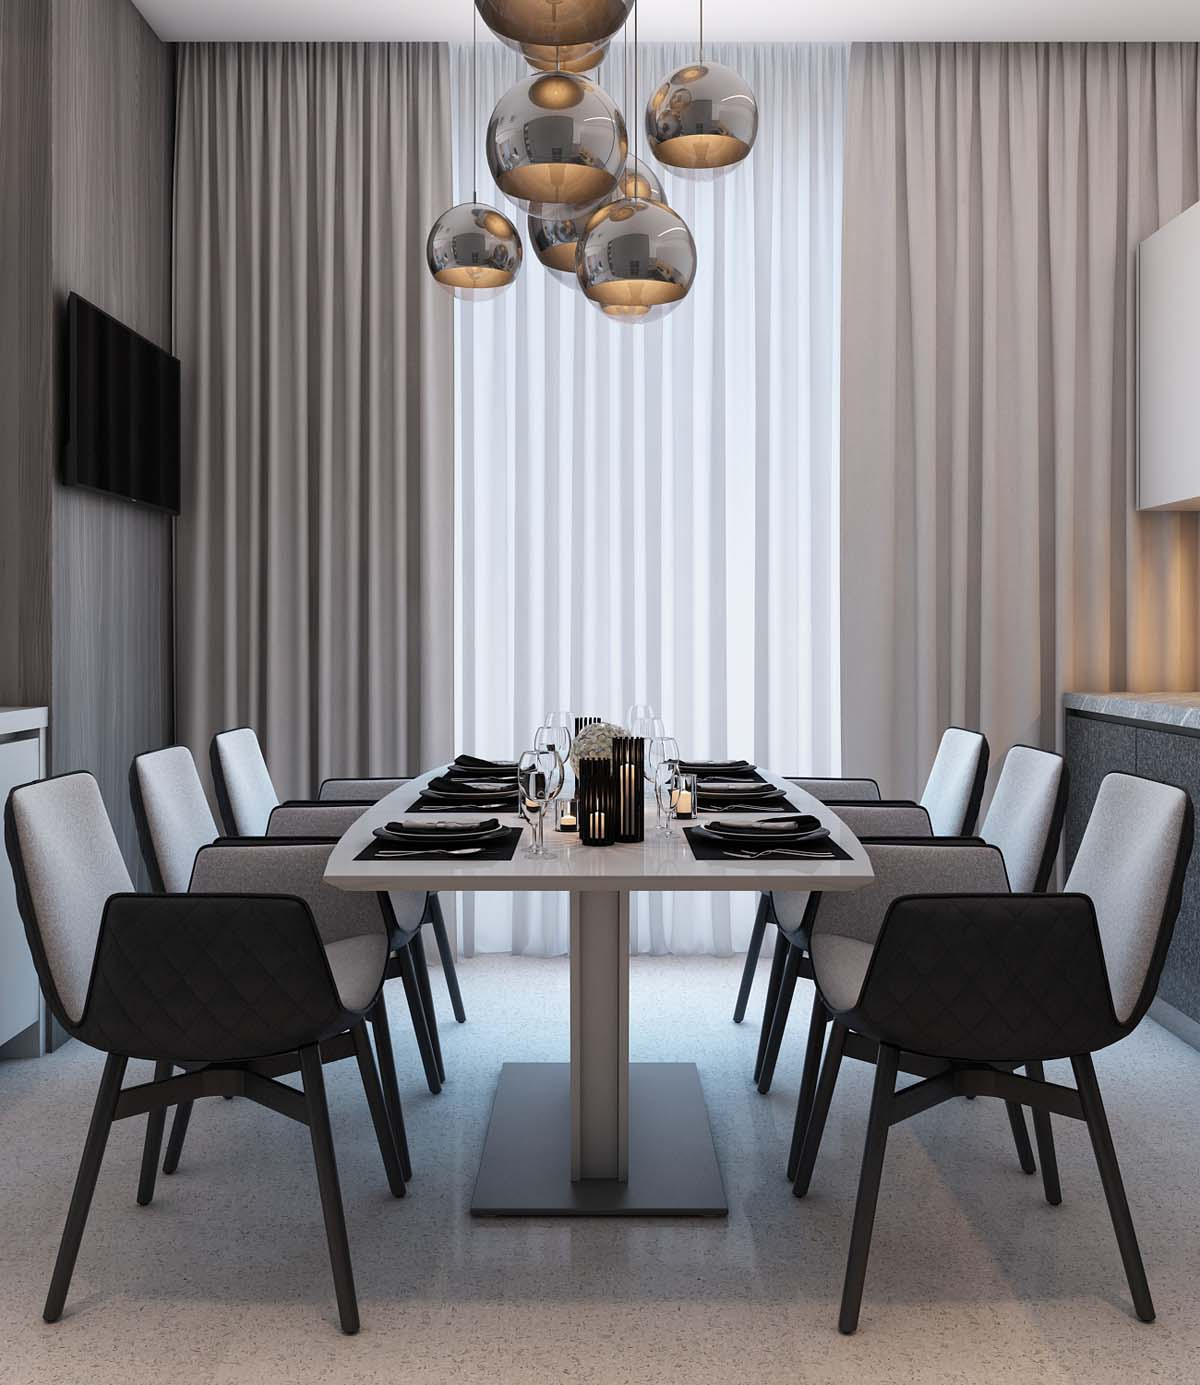 Modern Dining Chairs - A simple modern apartment in moscow